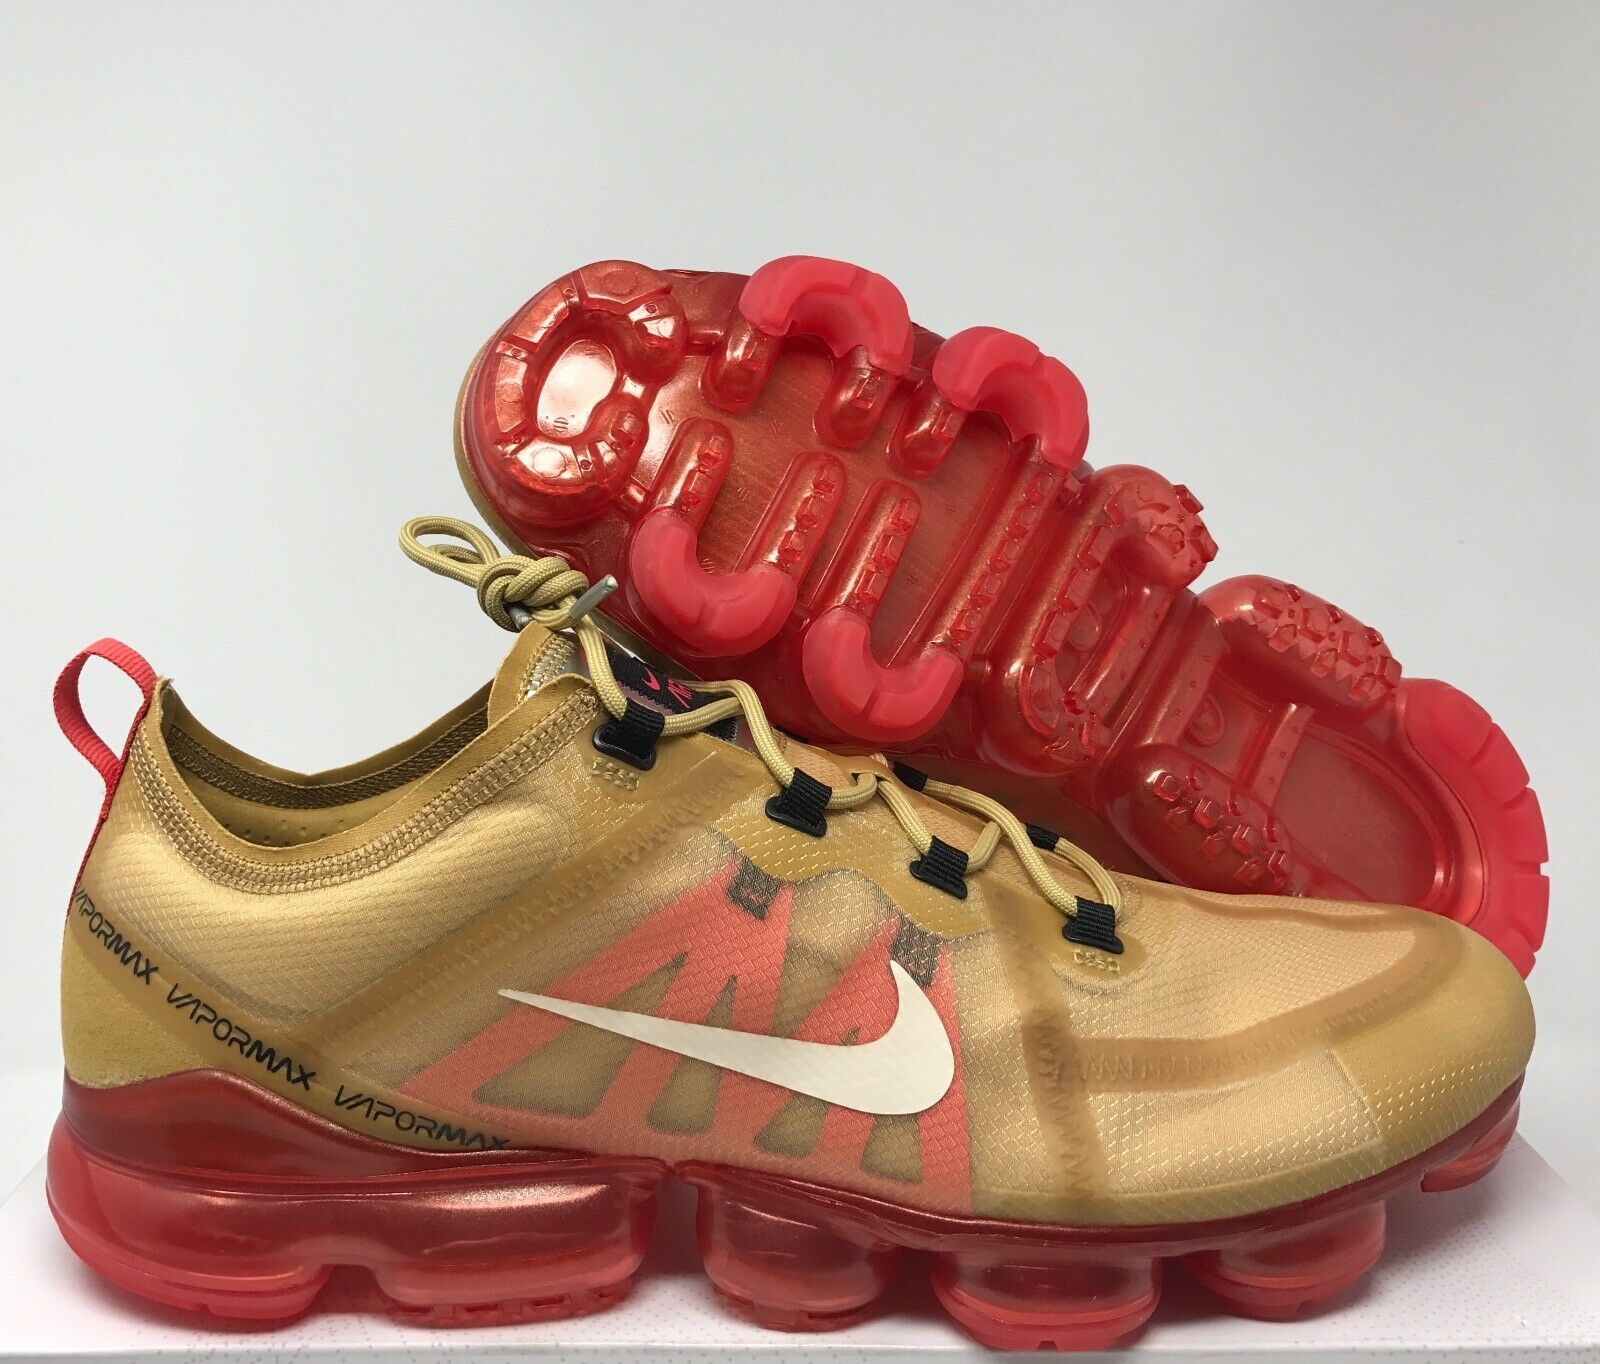 NIKE AIR VAPORMAX 2019 CLUB gold-LIGHT CREAM SZ 14 [AR6631-701]